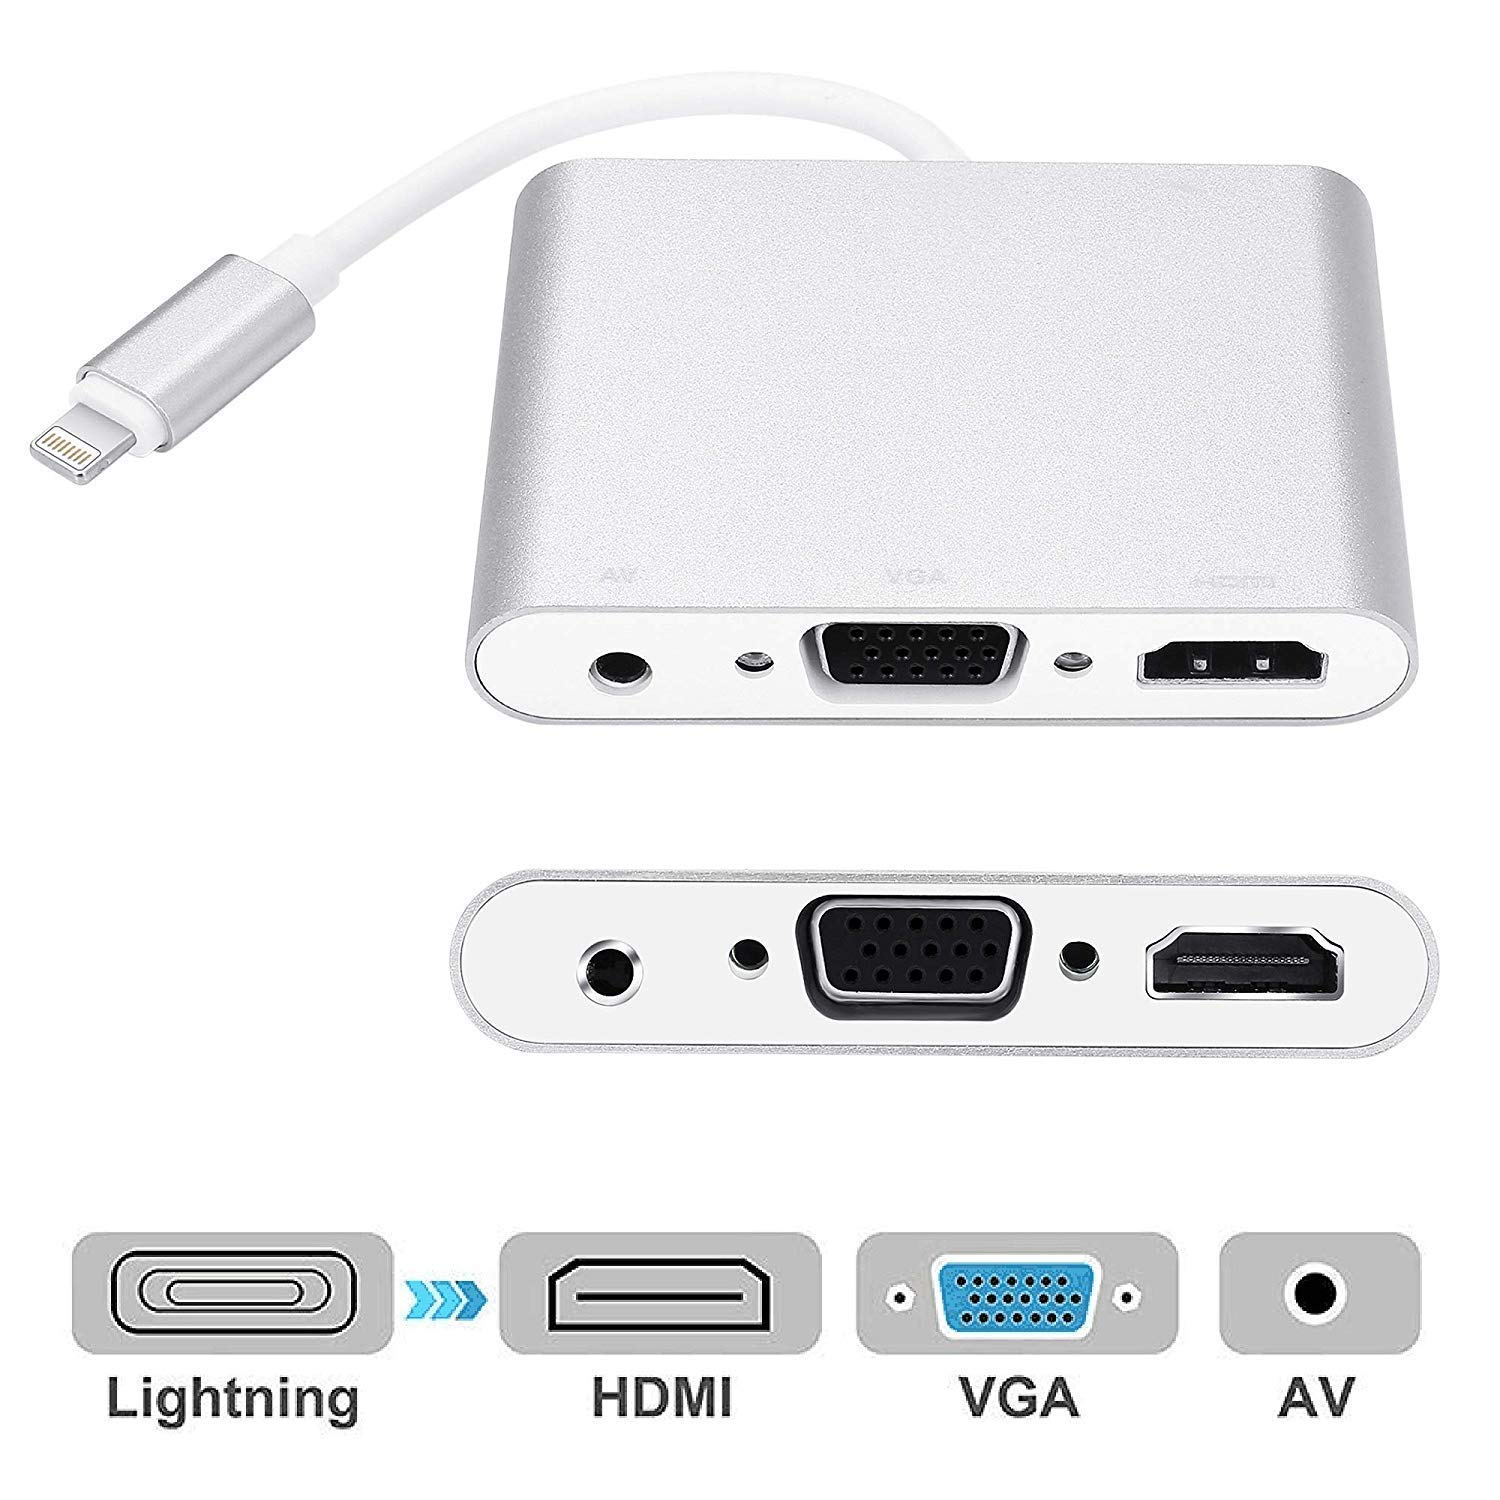 4 in 1 Digital Audio Video HDTV Converter For Lightning to VGA HDMI AV Adapter For iPhone Xs X 8 7 6plus For iPad Air/mini/pro4 in 1 Digital Audio Video HDTV Converter For Lightning to VGA HDMI AV Adapter For iPhone Xs X 8 7 6plus For iPad Air/mini/pro